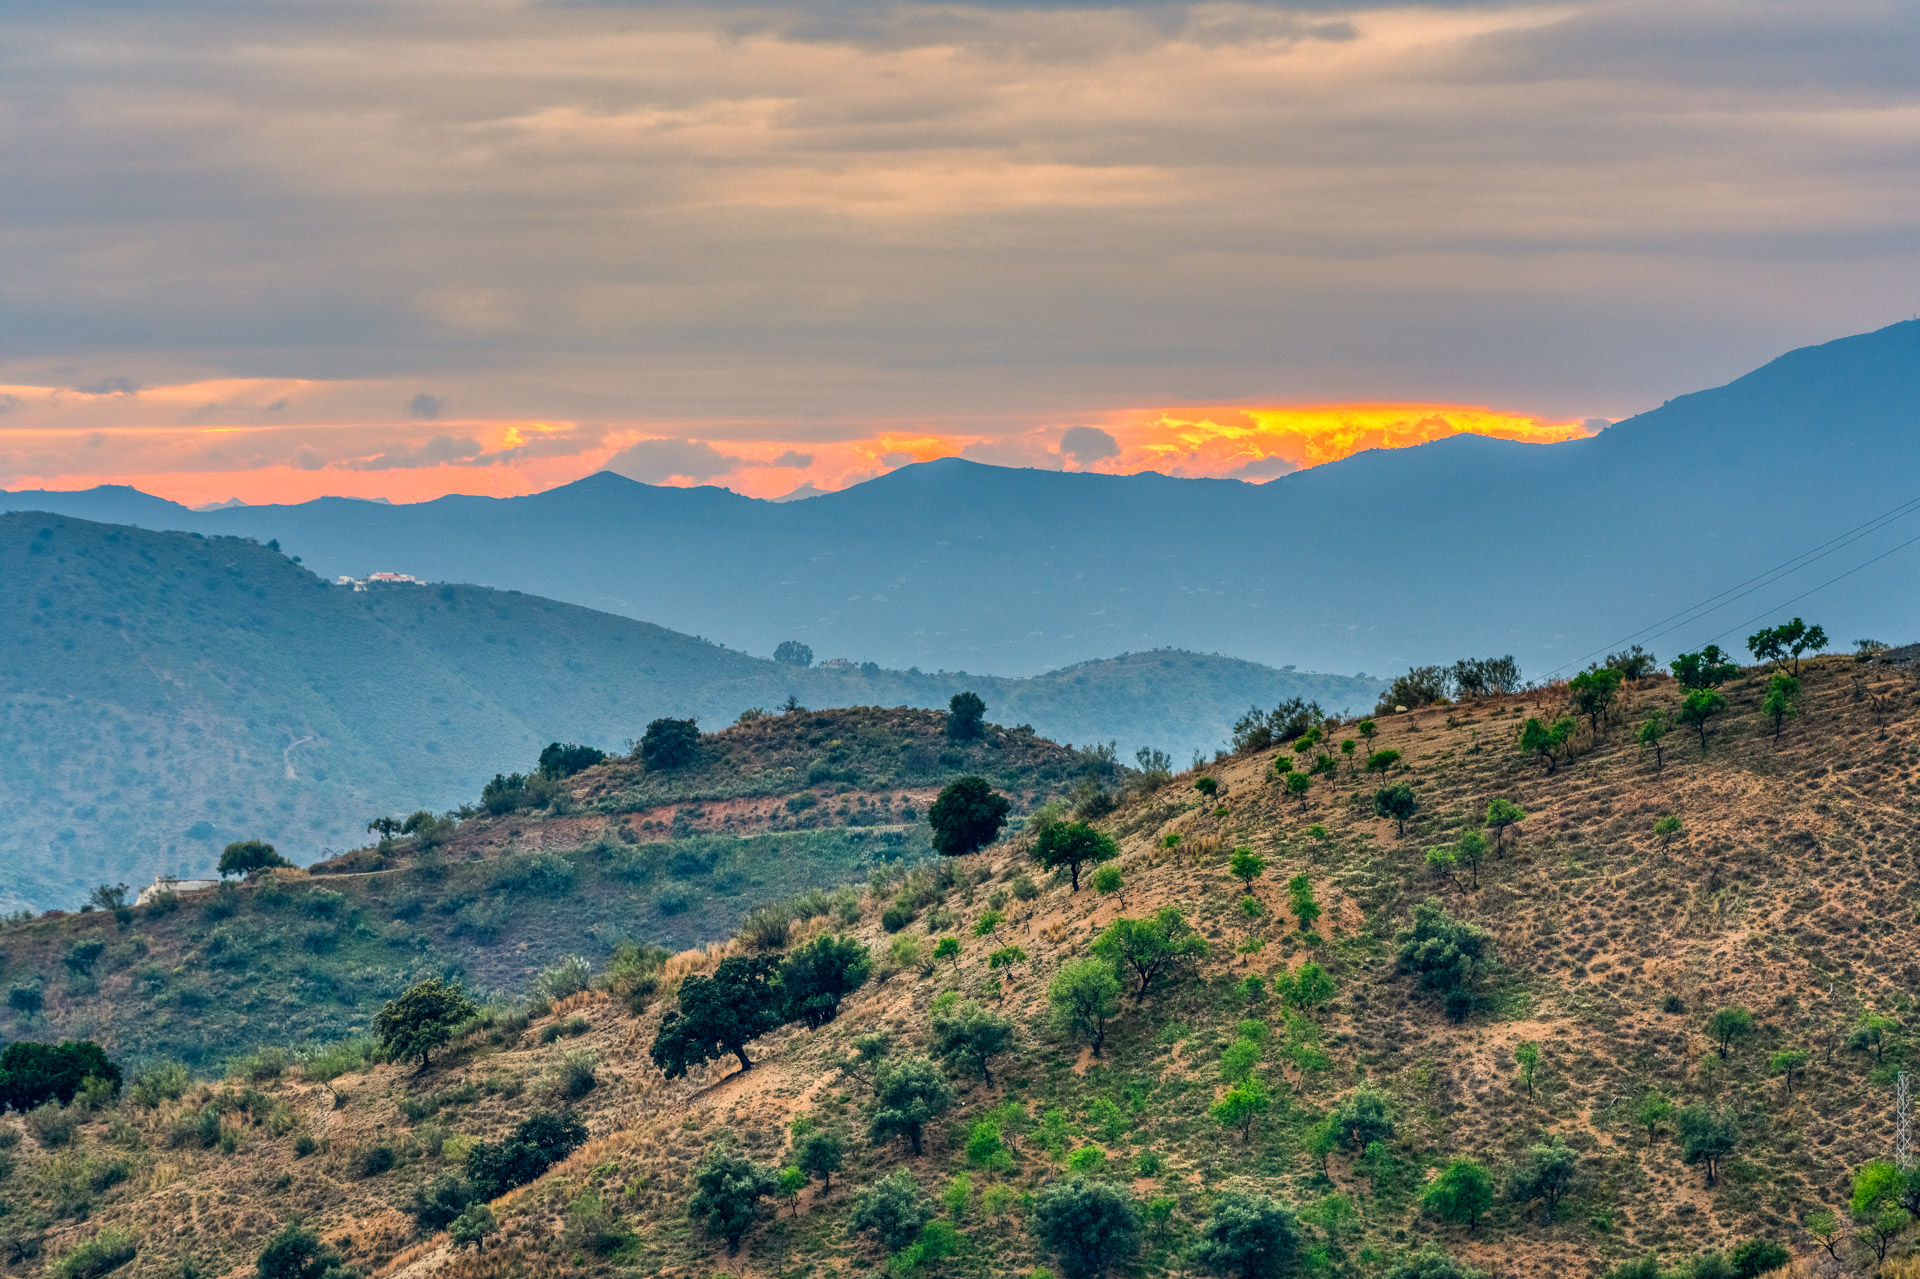 Mountain landscape in Andalucia, Spain.  Tags: Andalucia, Spain, Malaga, mountain, landscape